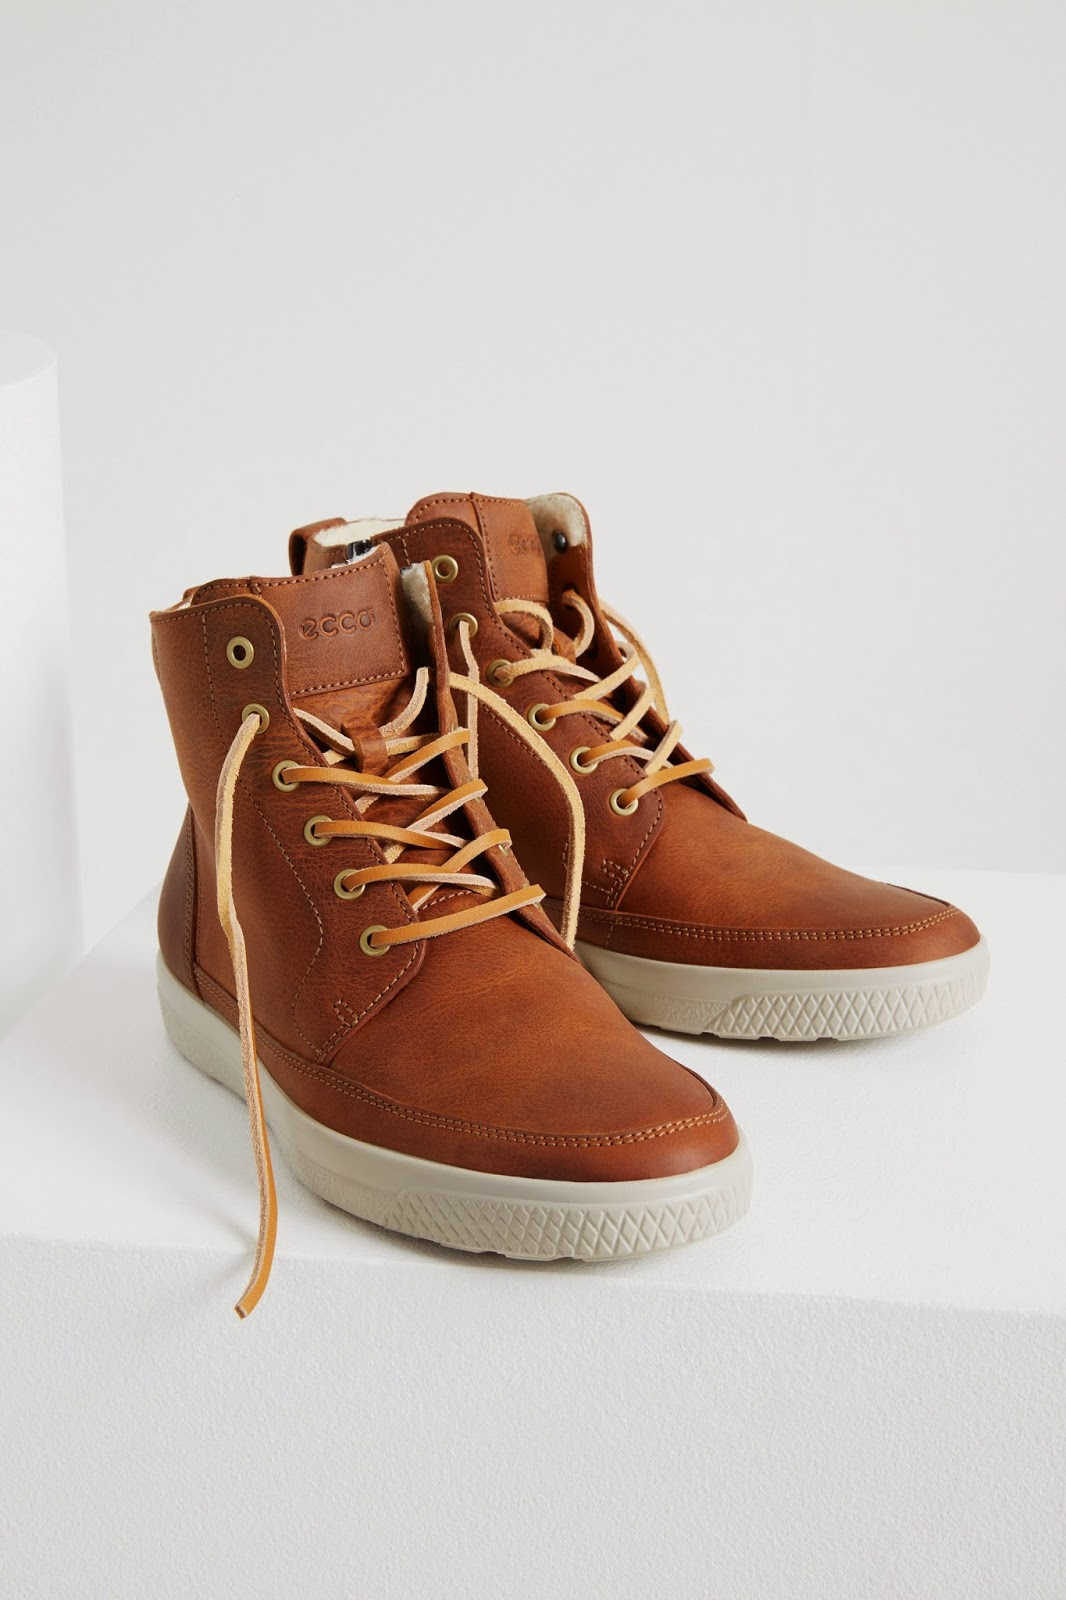 Ecco Shoes For Men Orthopedic With Belcro